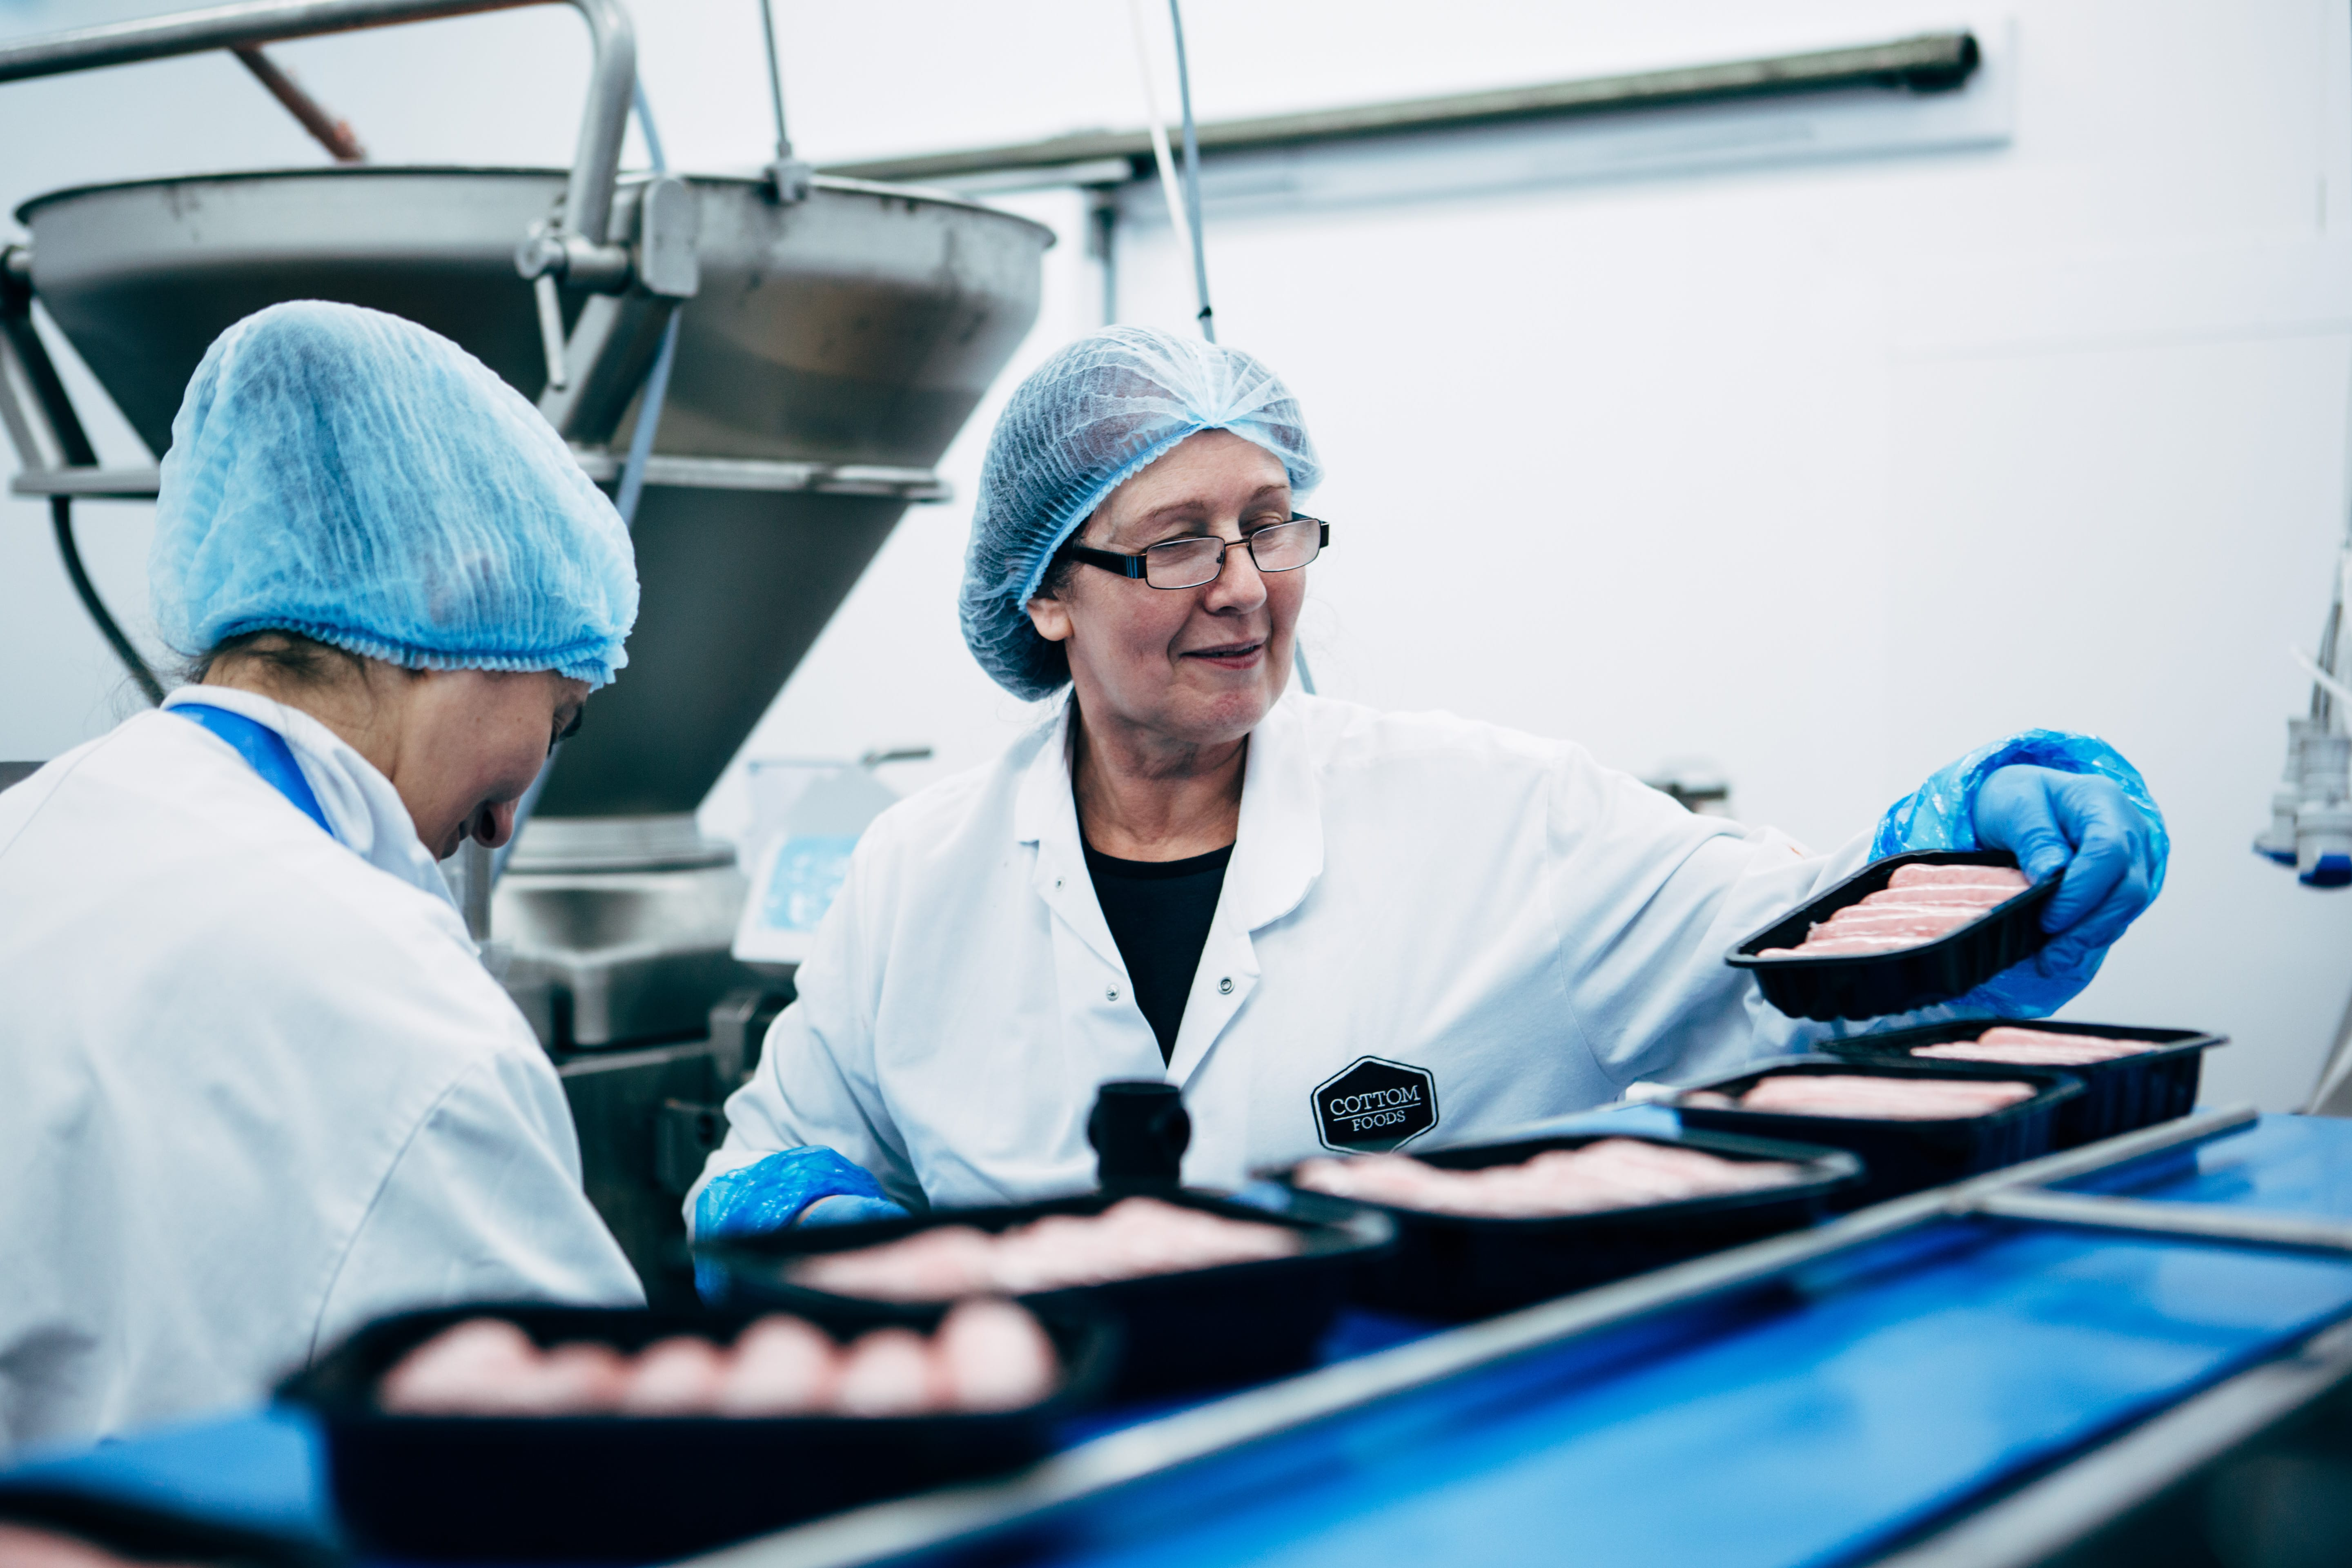 Brc Accreditation Wins Cottom Foods New Contract With